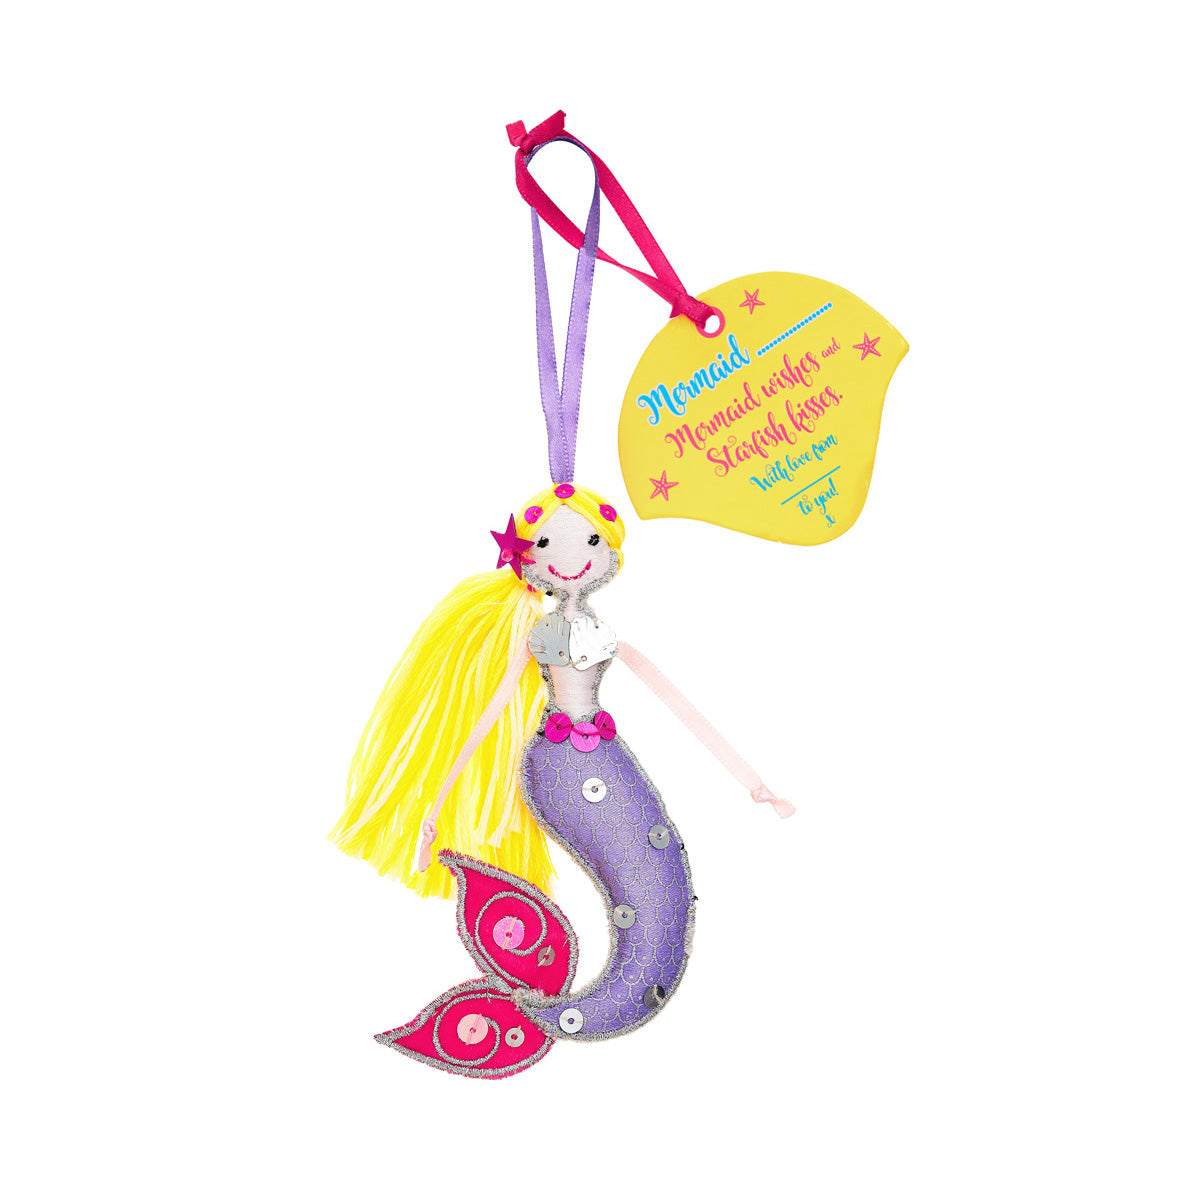 Fairtrade mermaid yellow hair